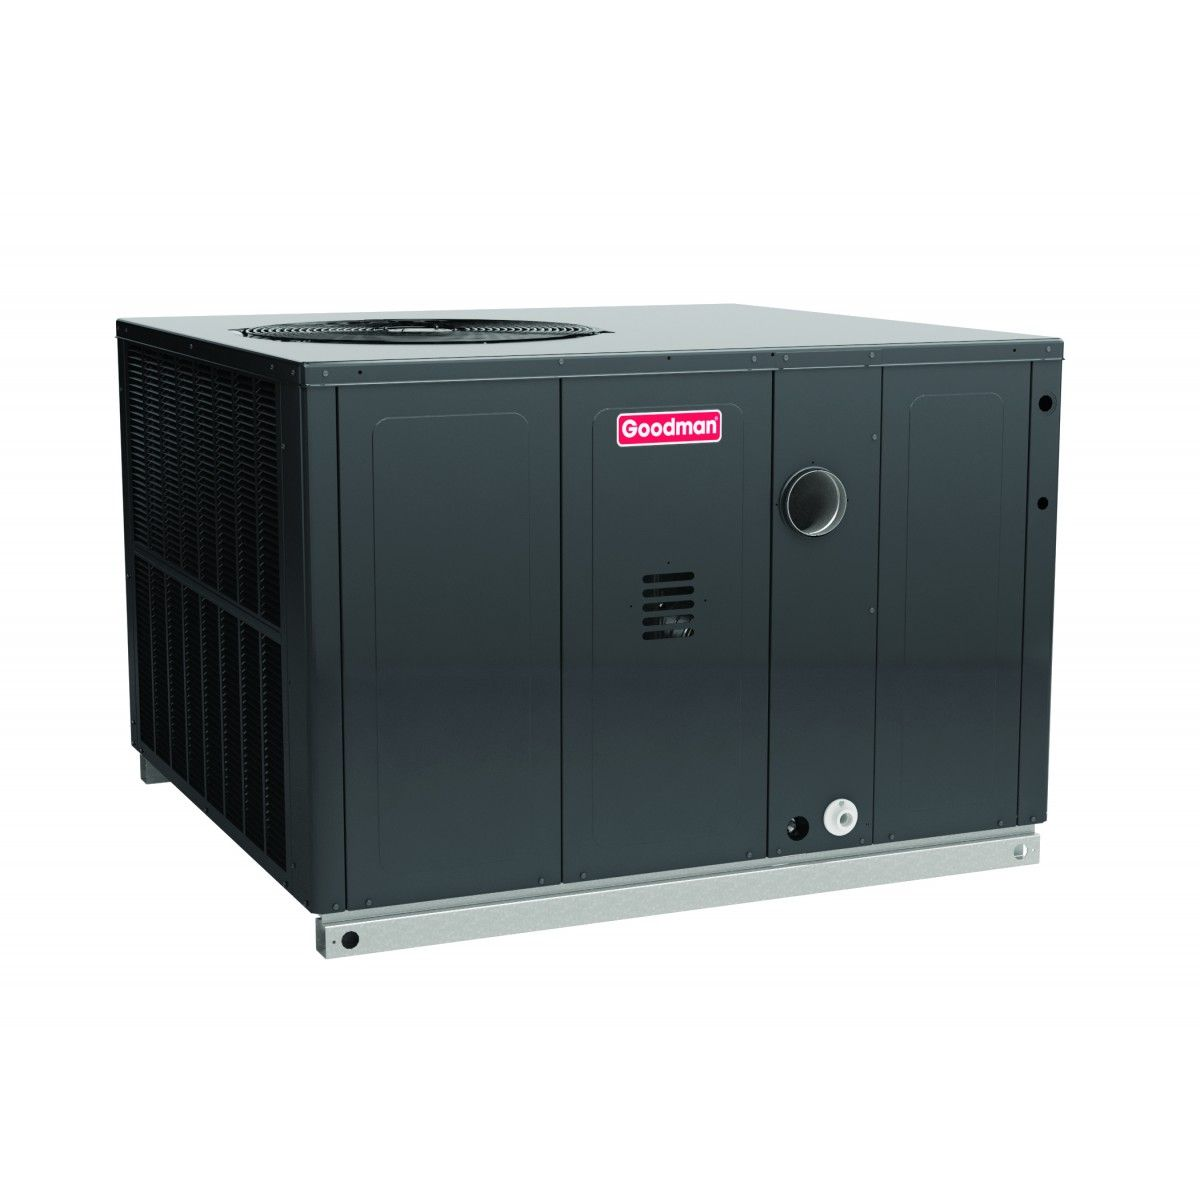 #C50649 Goodman 4.0 Ton 14 SEER 100K BTU Packge Unit With Gas Heat  Brand New 141 4 Ton Ac Units images with 1200x1200 px on helpvideos.info - Air Conditioners, Air Coolers and more